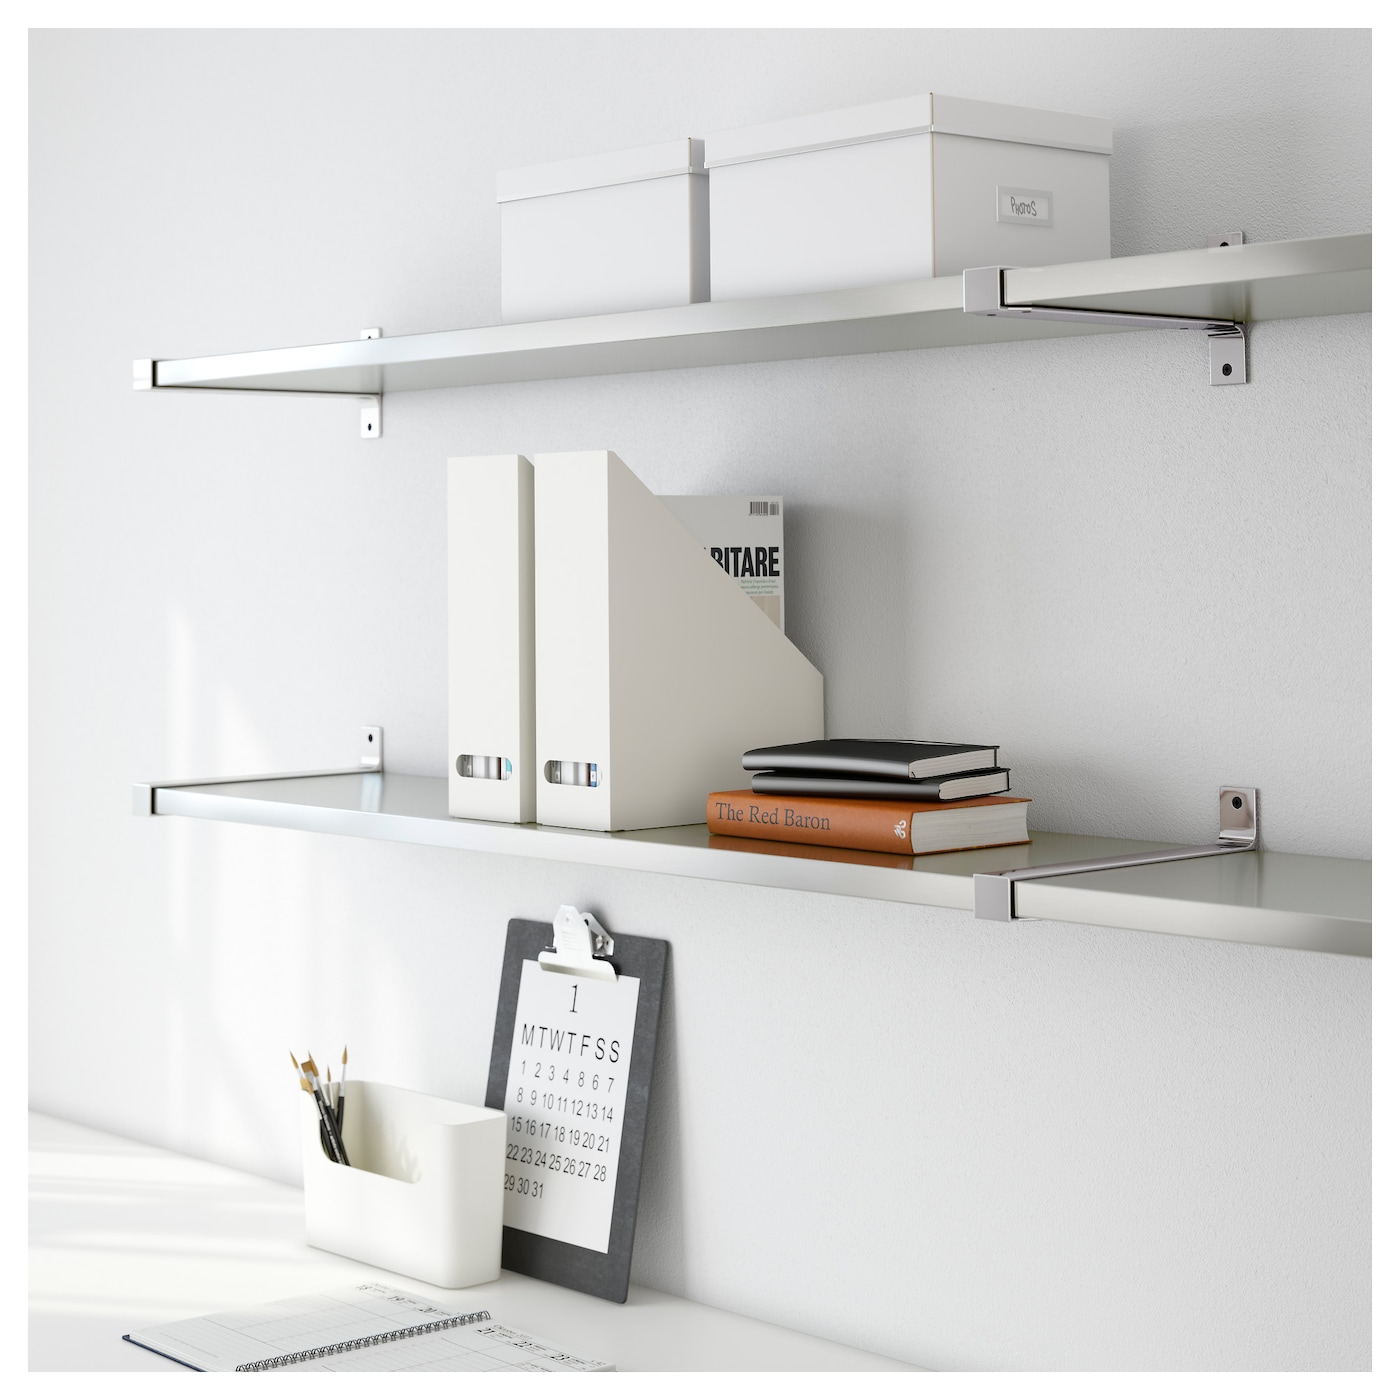 Ikea Ekby BjÄrnum Mossby Wall Shelf Parioning Inside Keeps Shelves In Place